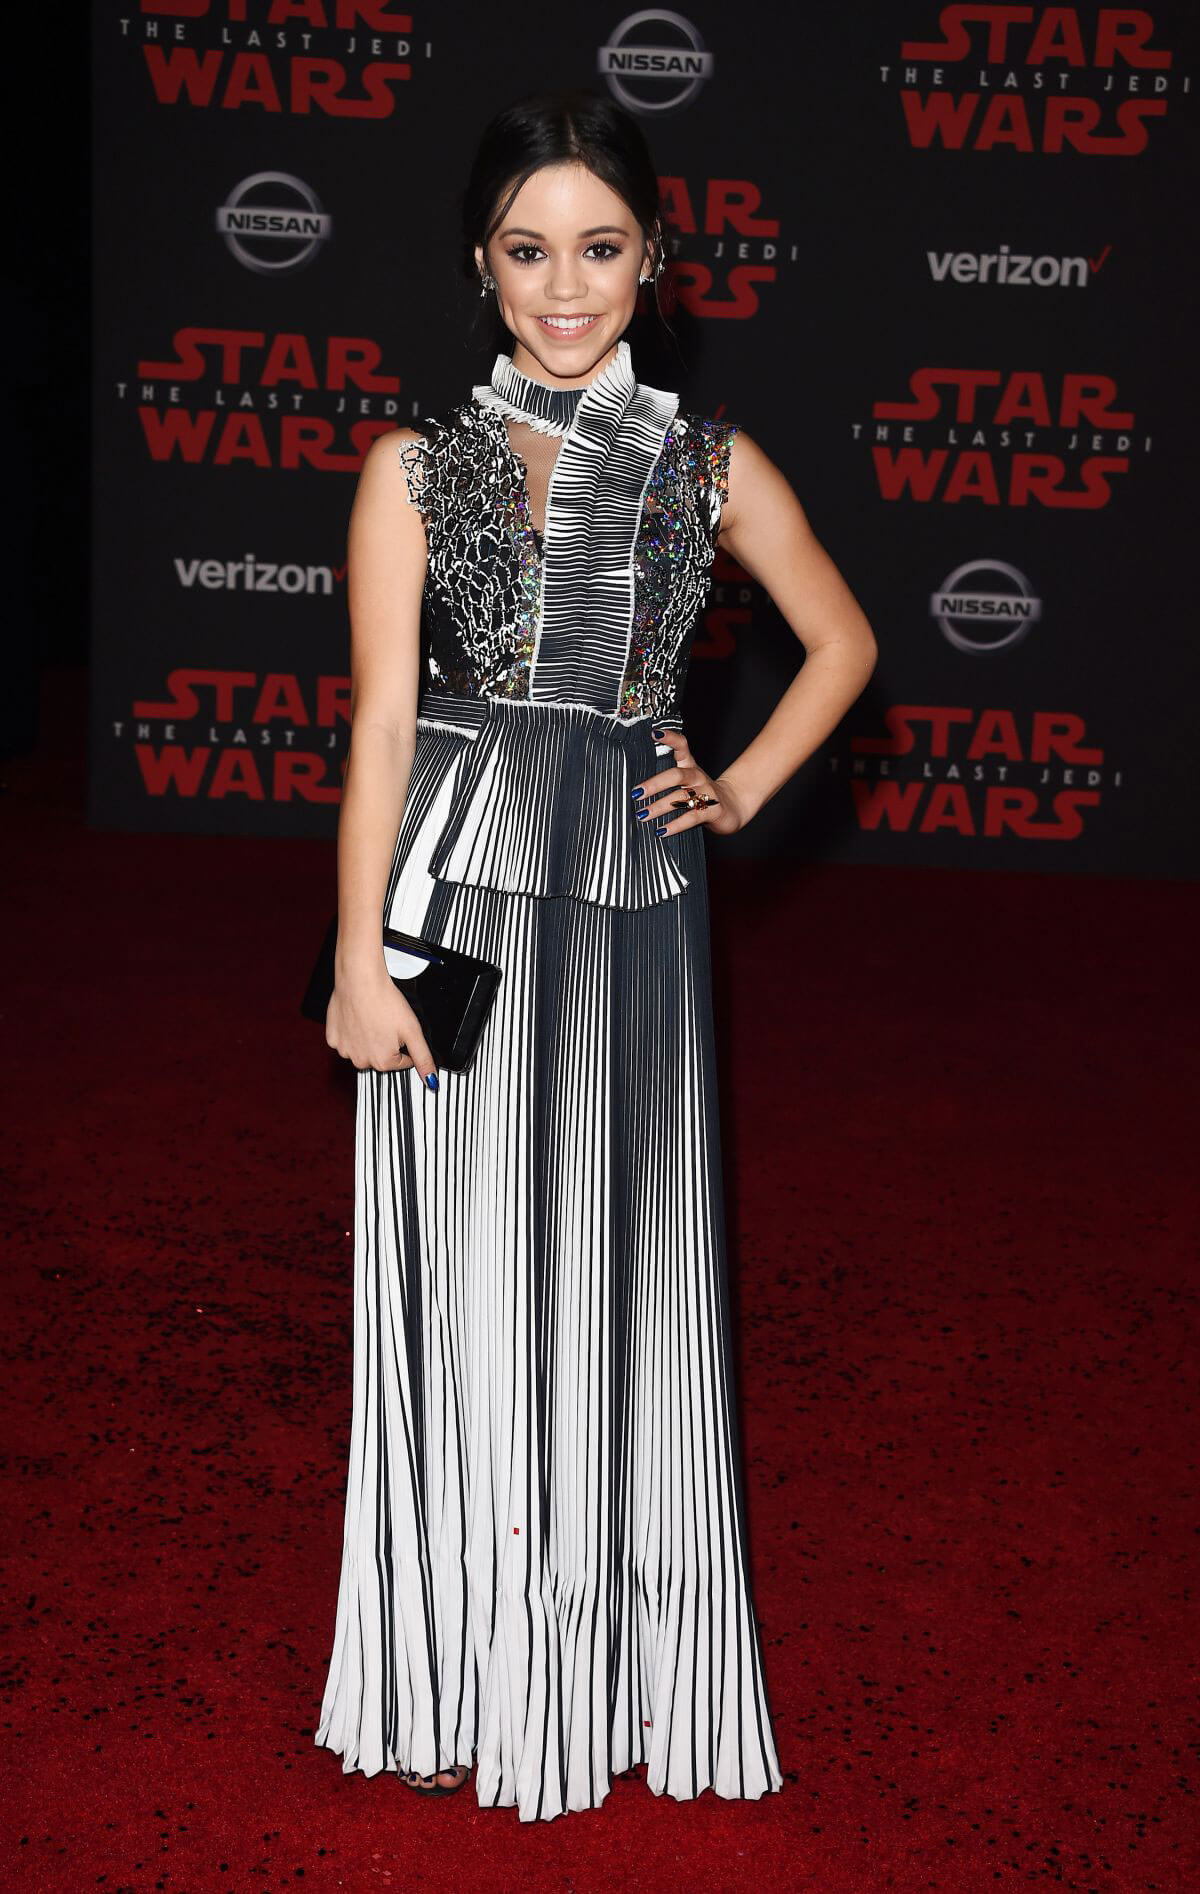 Jenna Ortega Stills at Star Wars: The Last Jedi Premiere in Los Angeles 2017/12/09